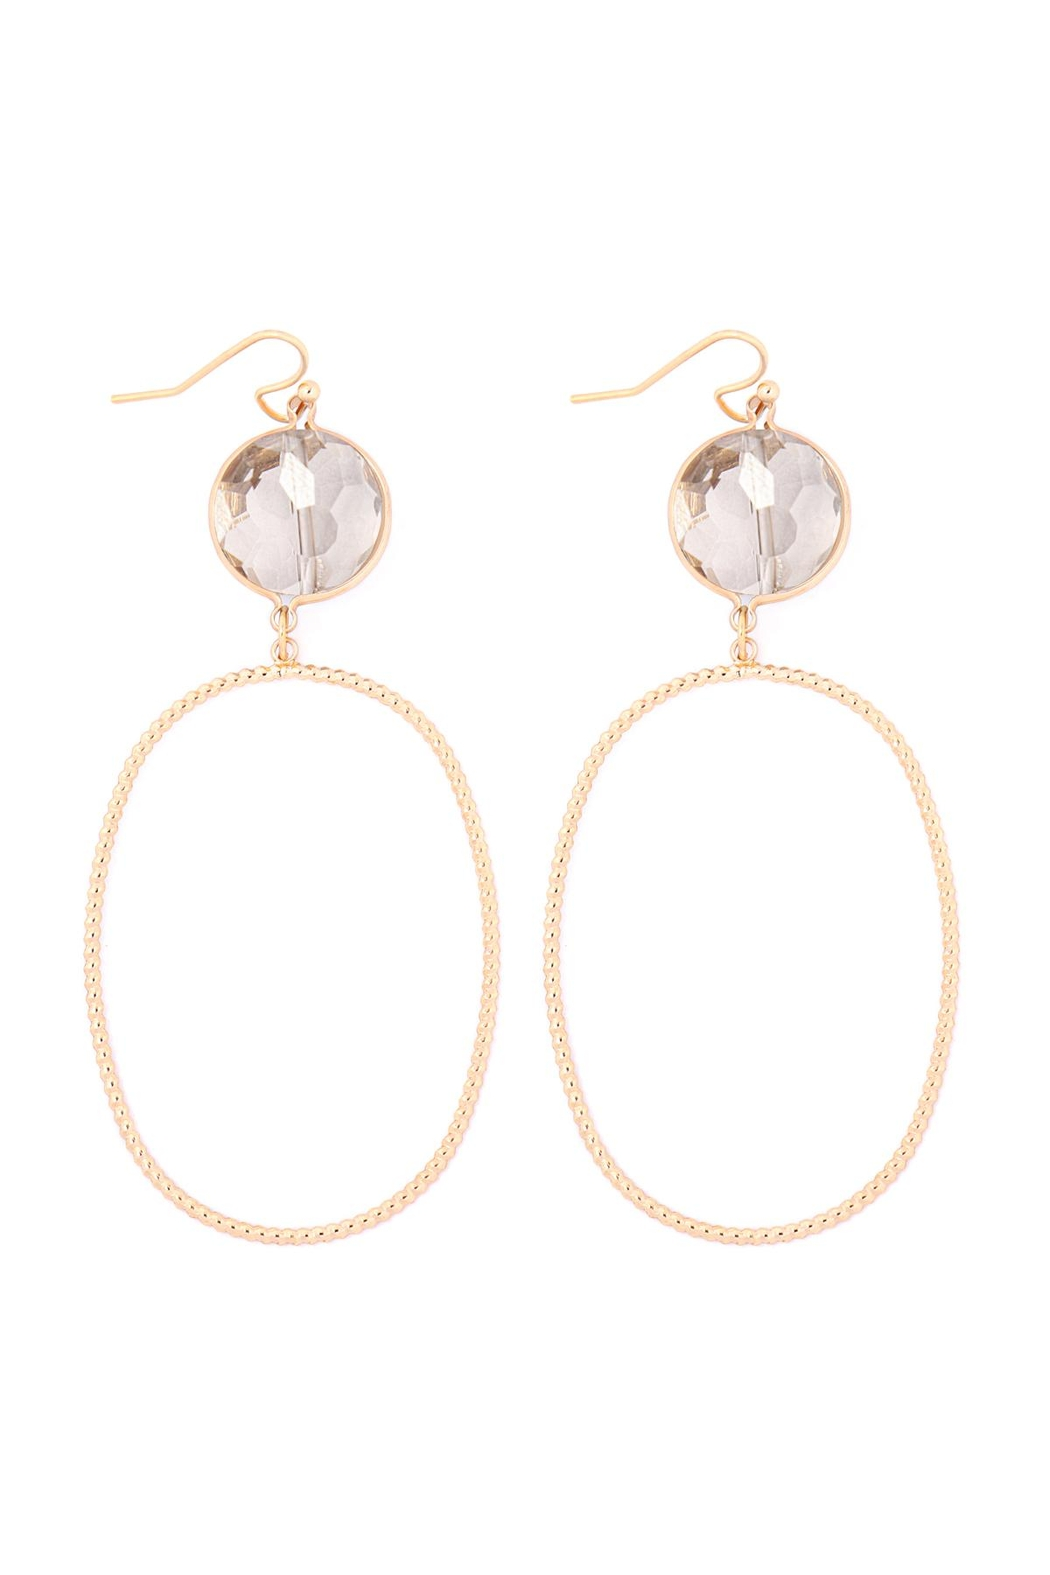 Riah Fashion Glass-Stone-Link-Open-Oval-Textured-Hook-Earrings - Main Image